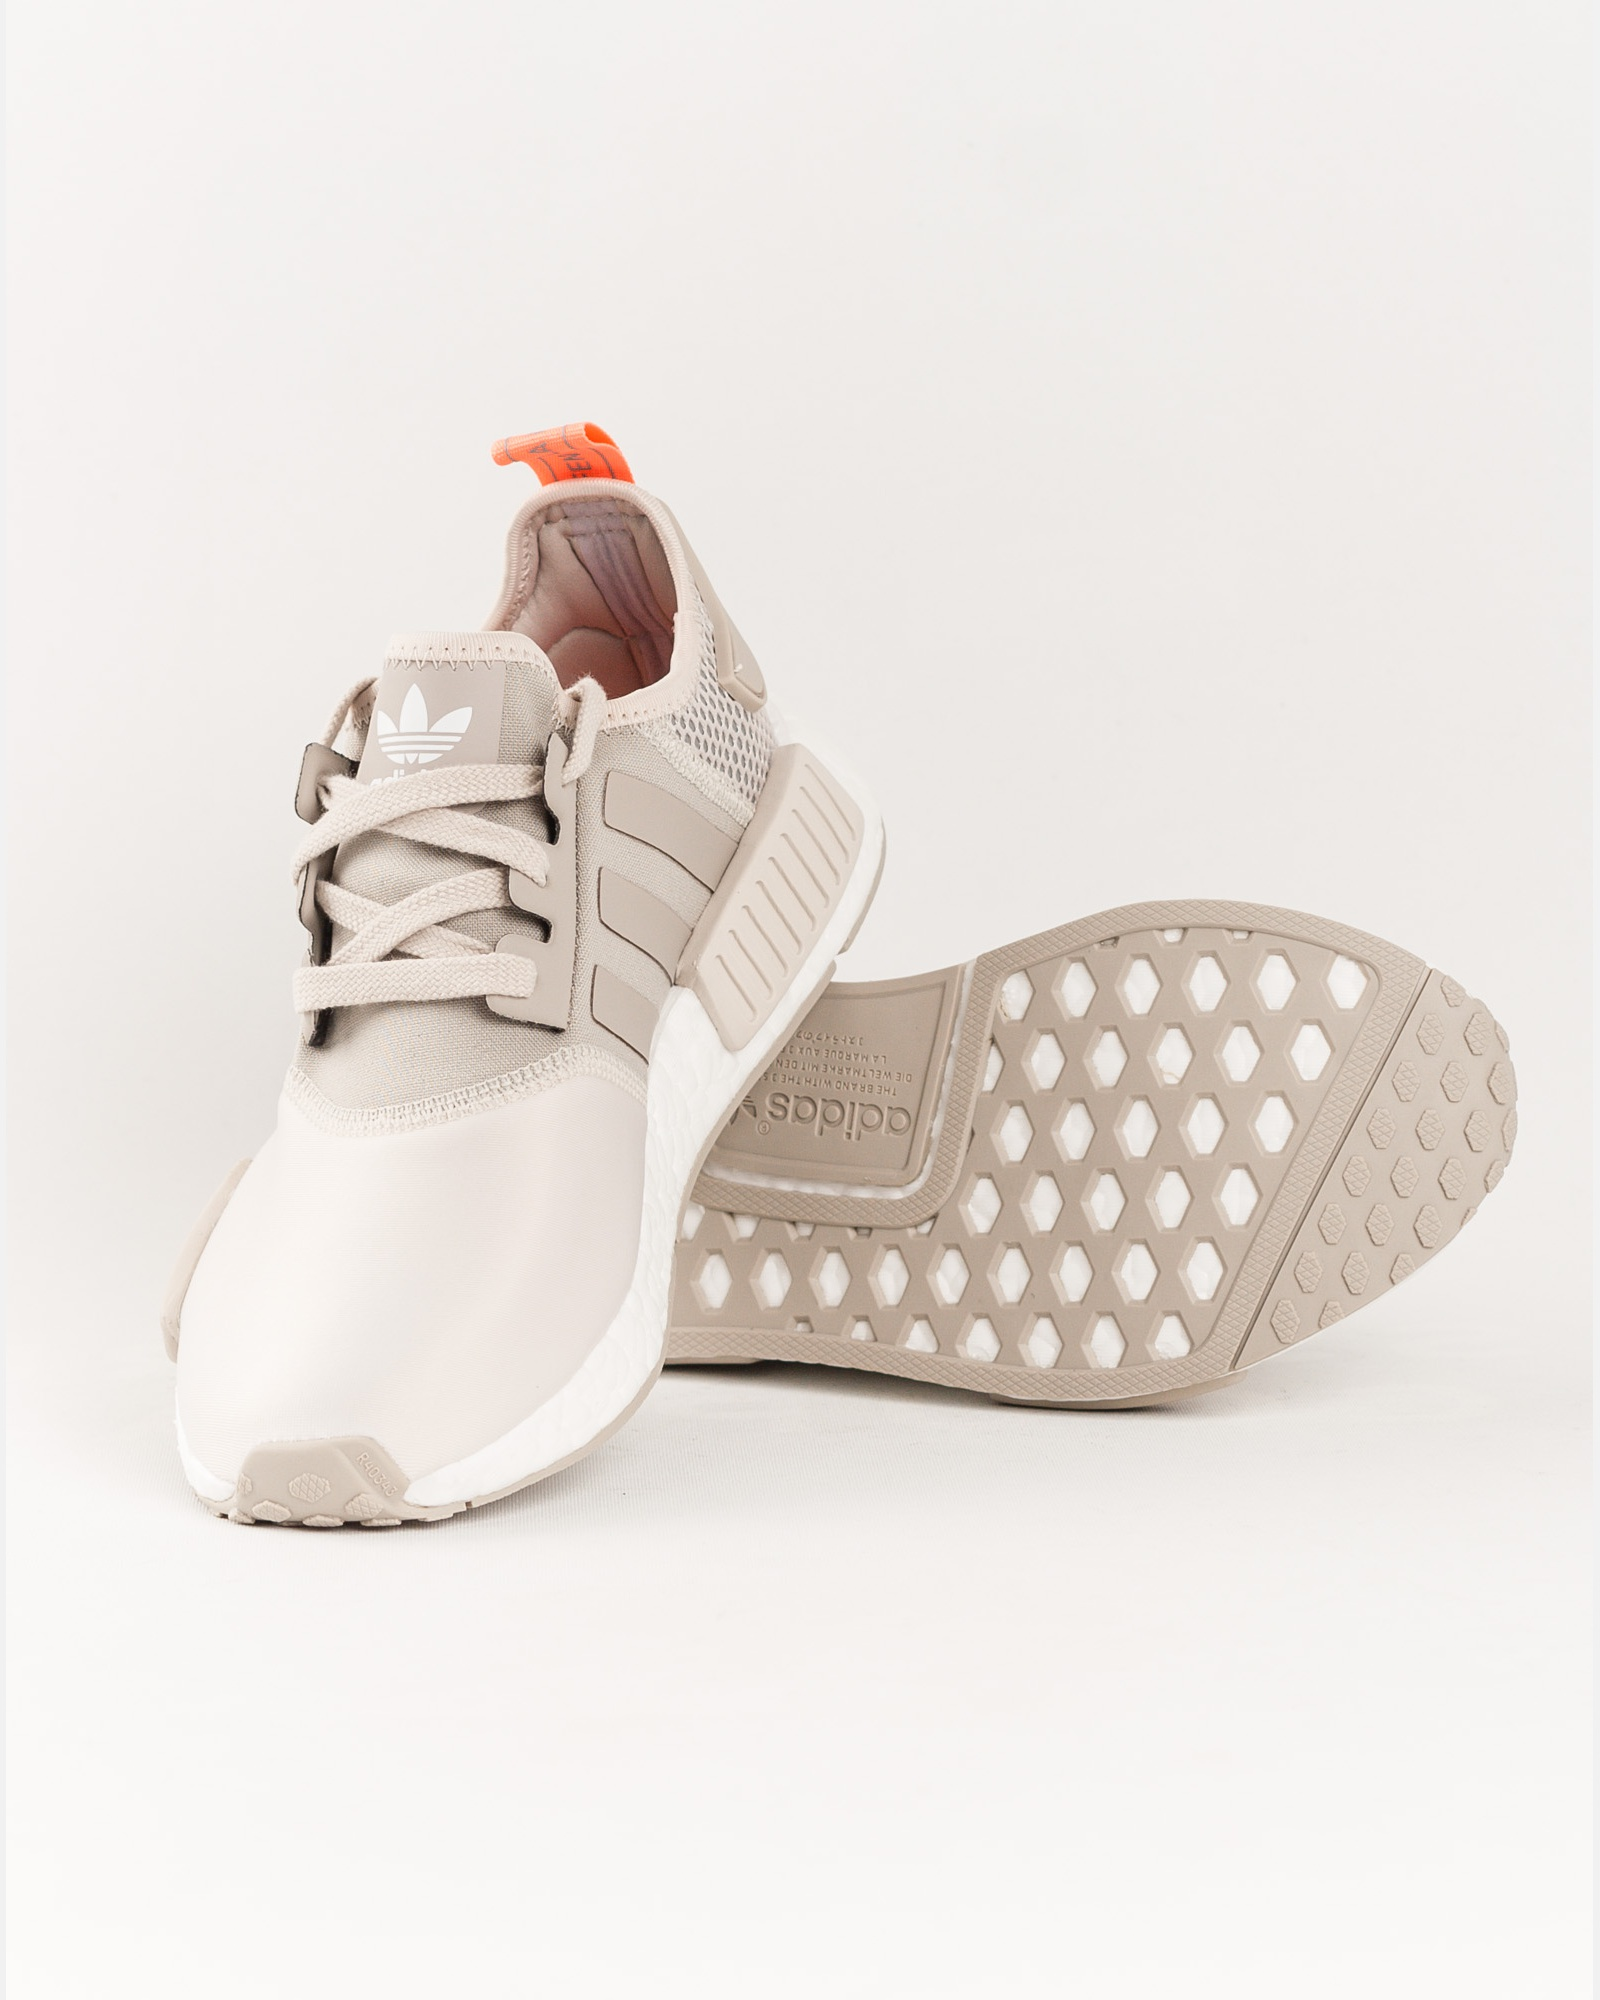 9ad558ed89879 W Femme Adidas Nmd Blanc Chaussures R1 From So49789012 Category T1PHwxqz   Cher R1 Affaire Nmd Femme Adidas Baskets Pas Meilleure qcgSWfnS ...